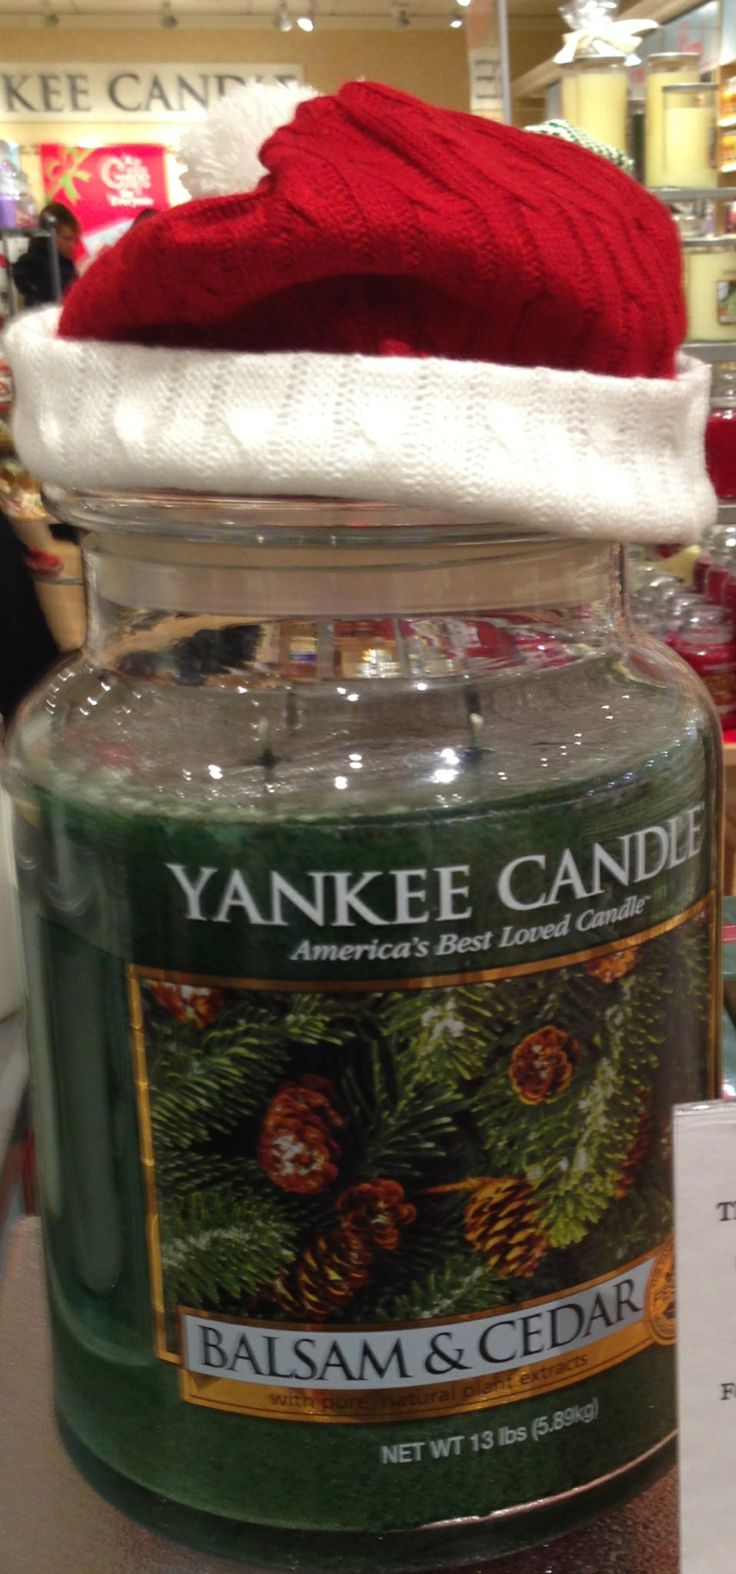 Yankee Candle Country Kitchen 445 Best Images About Yankee Candles On Pinterest Jars Votive